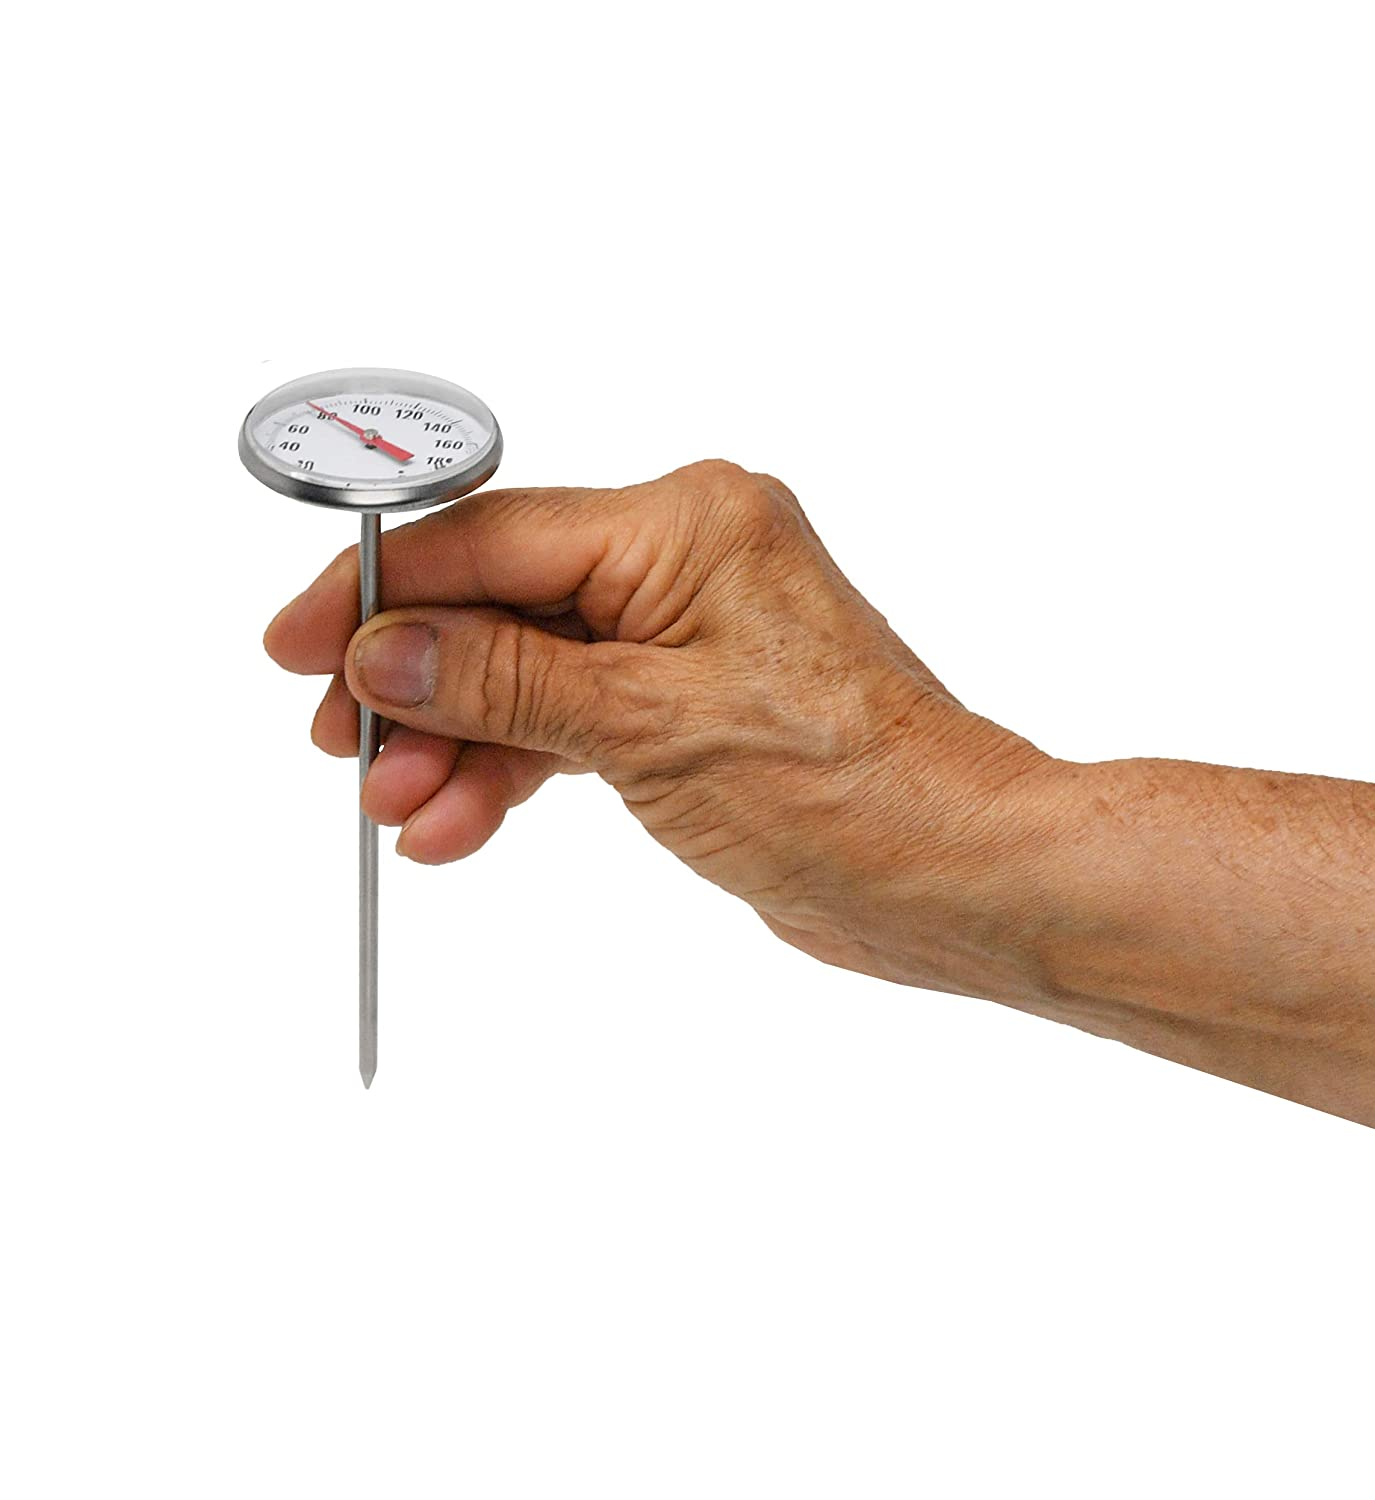 by Home-X 1.75 Inch Diameter Instant Read Precision Analog Meat Poultry Thermometer